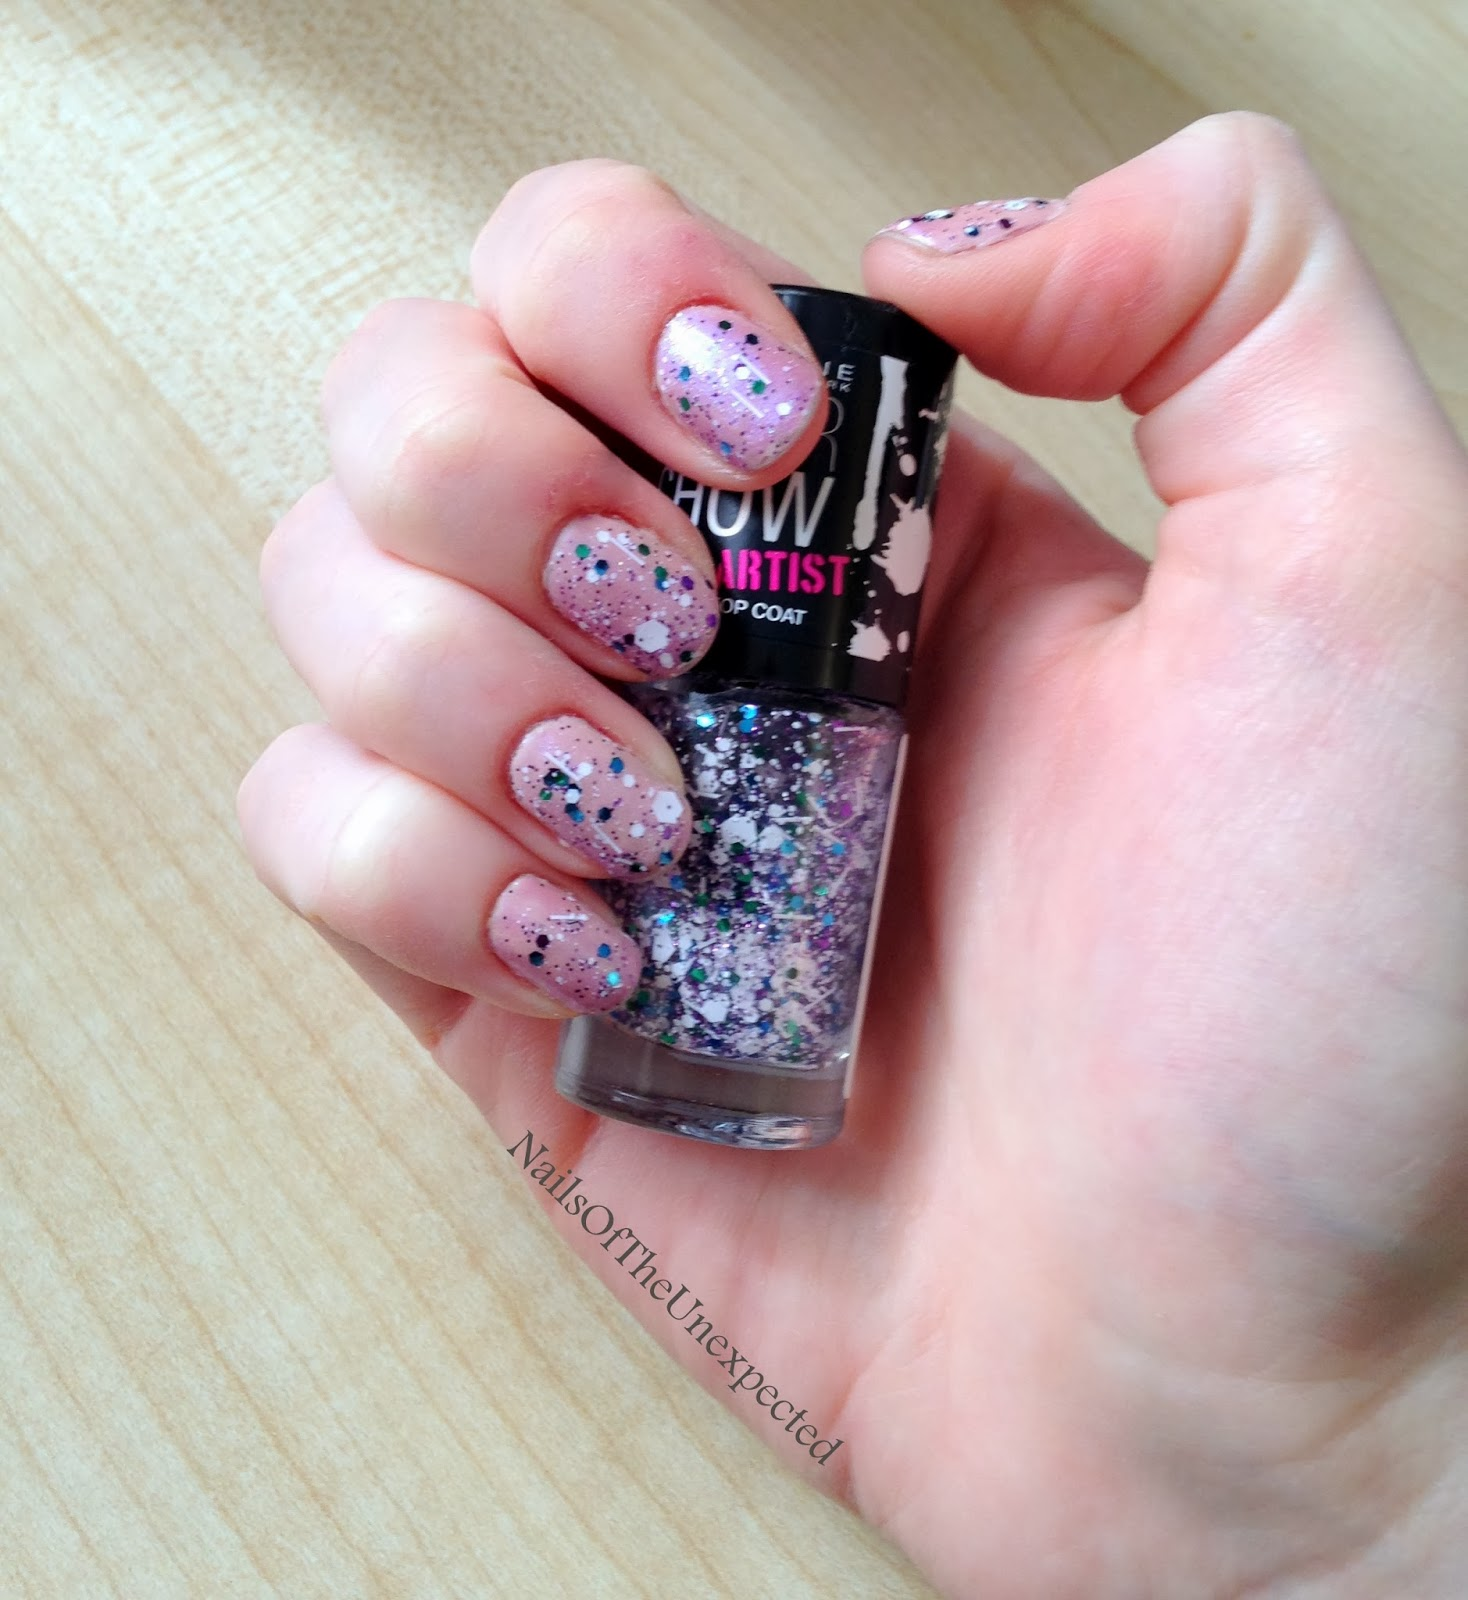 maybelline-white-splatter